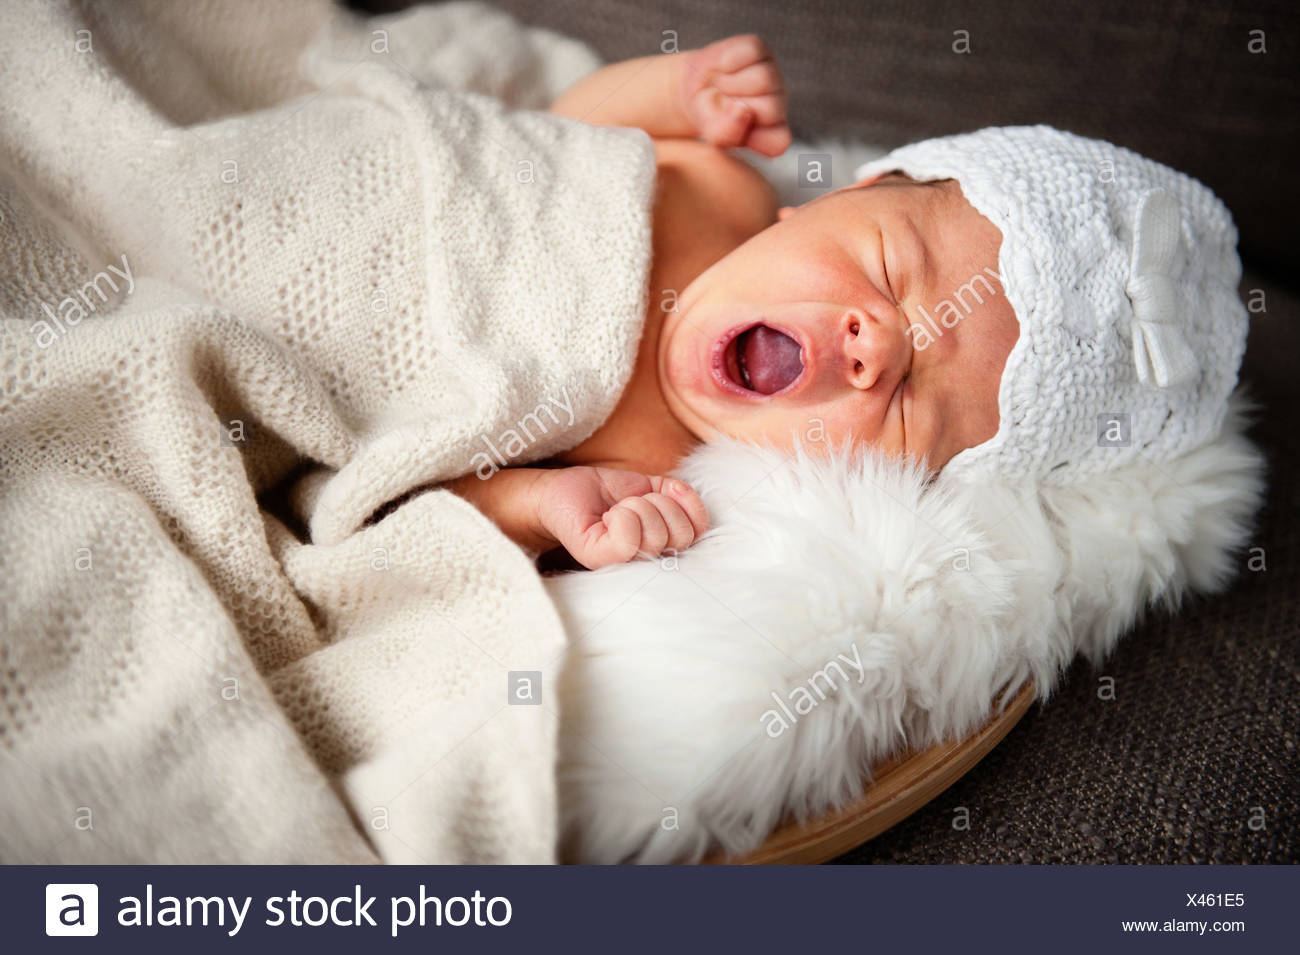 Portrait of newborn baby girl yawning Stock Photo